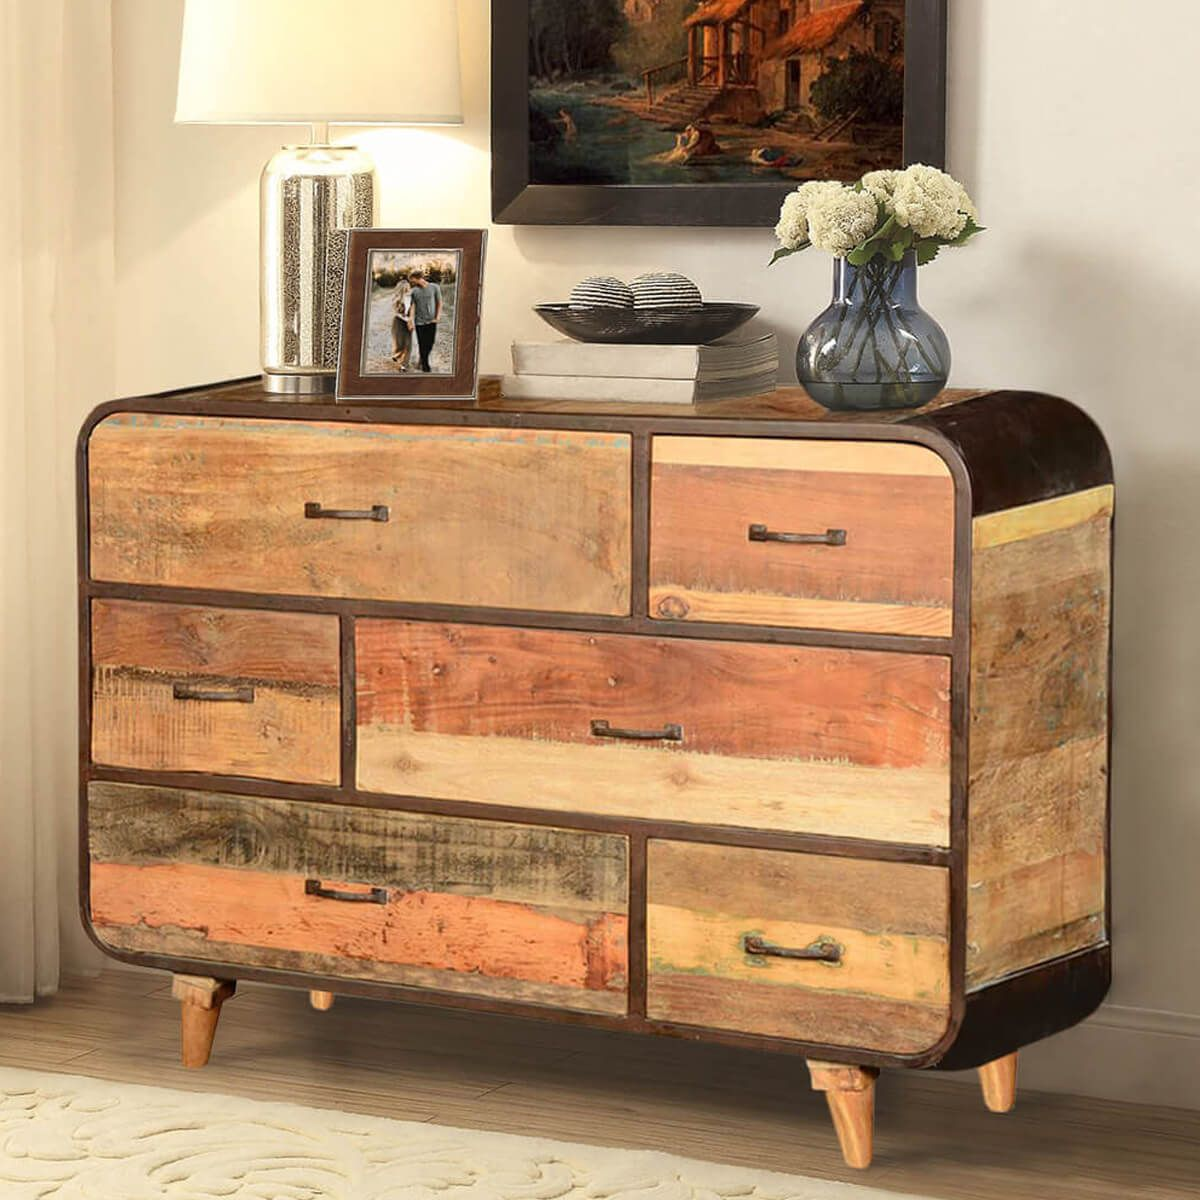 Sierra Living Concepts All wood furniture, Reclaimed